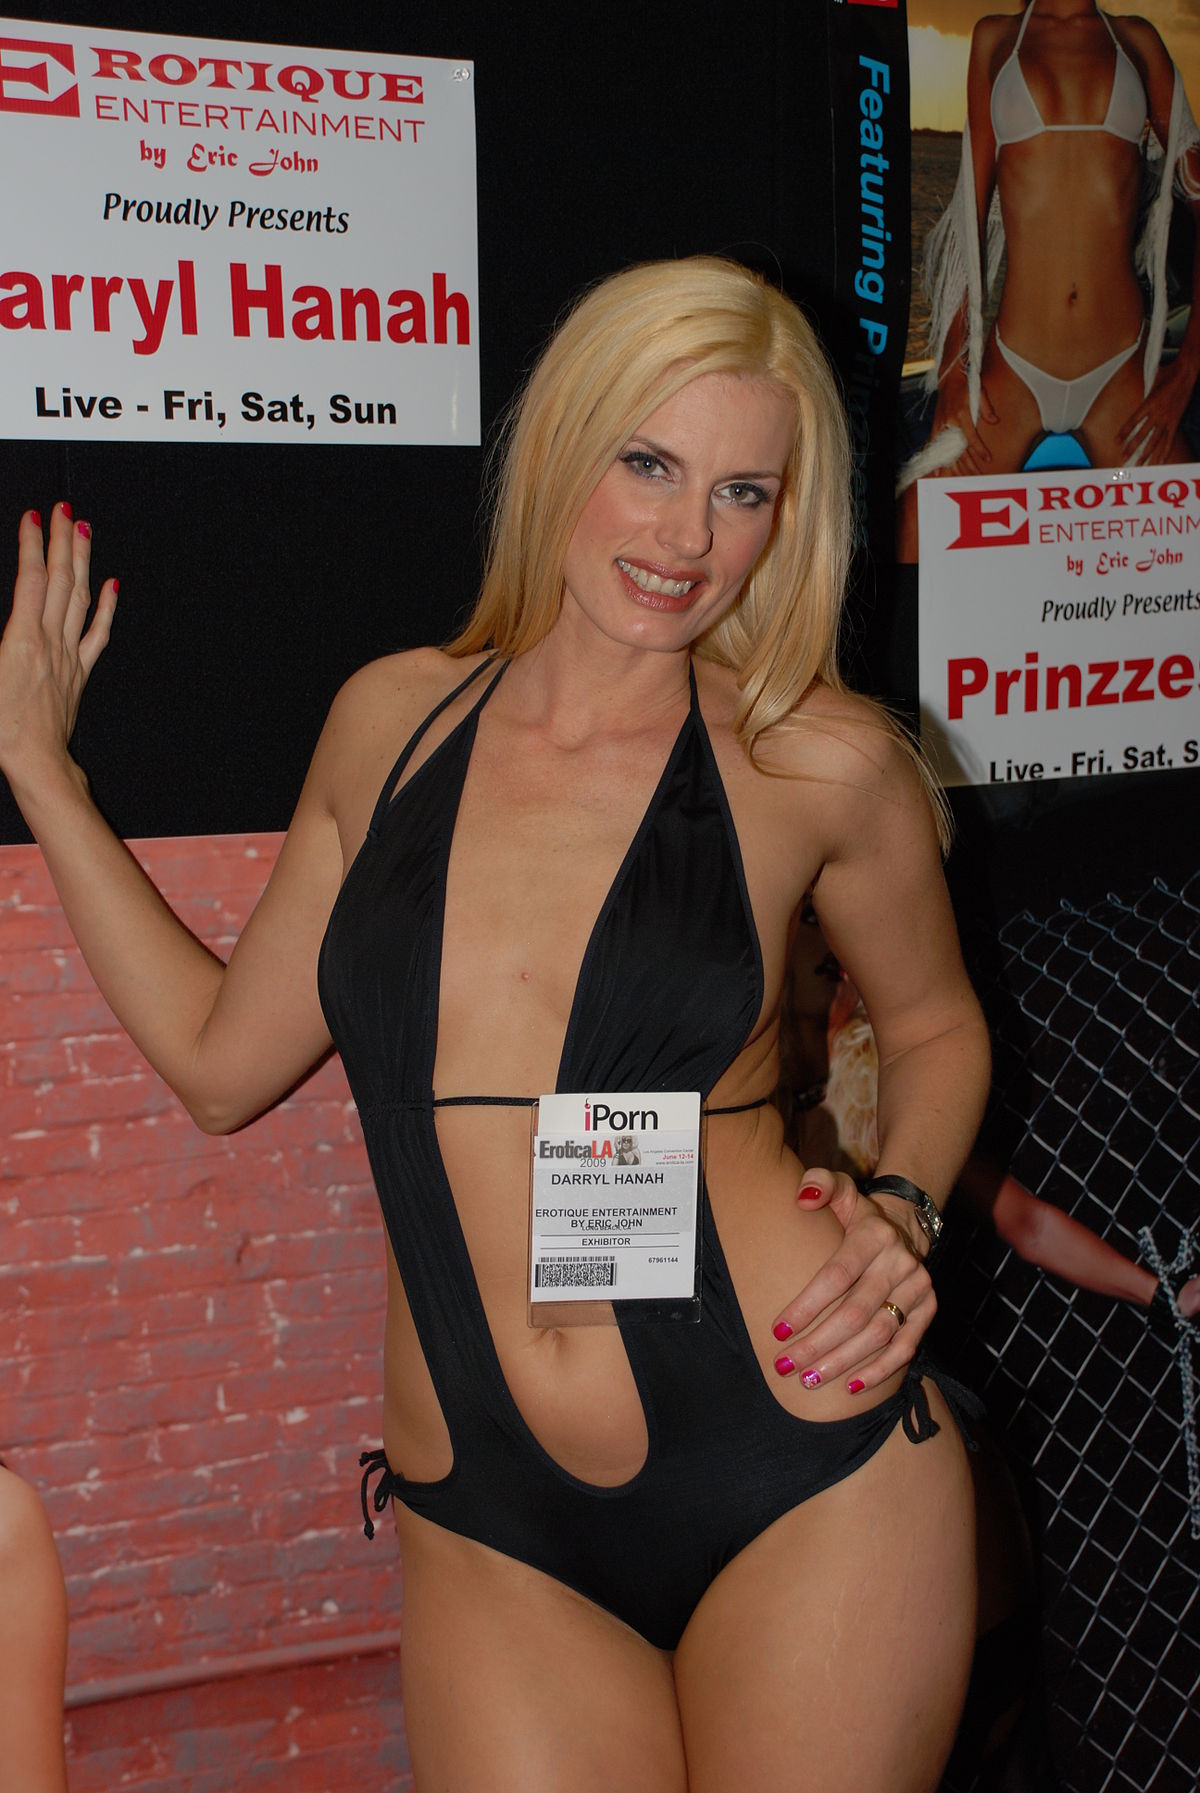 http://upload.wikimedia.org/wikipedia/commons/thumb/4/42/Darryl_Hanah_at_Erotica_LA_2009_2.jpg/1200px-Darryl_Hanah_at_Erotica_LA_2009_2.jpg